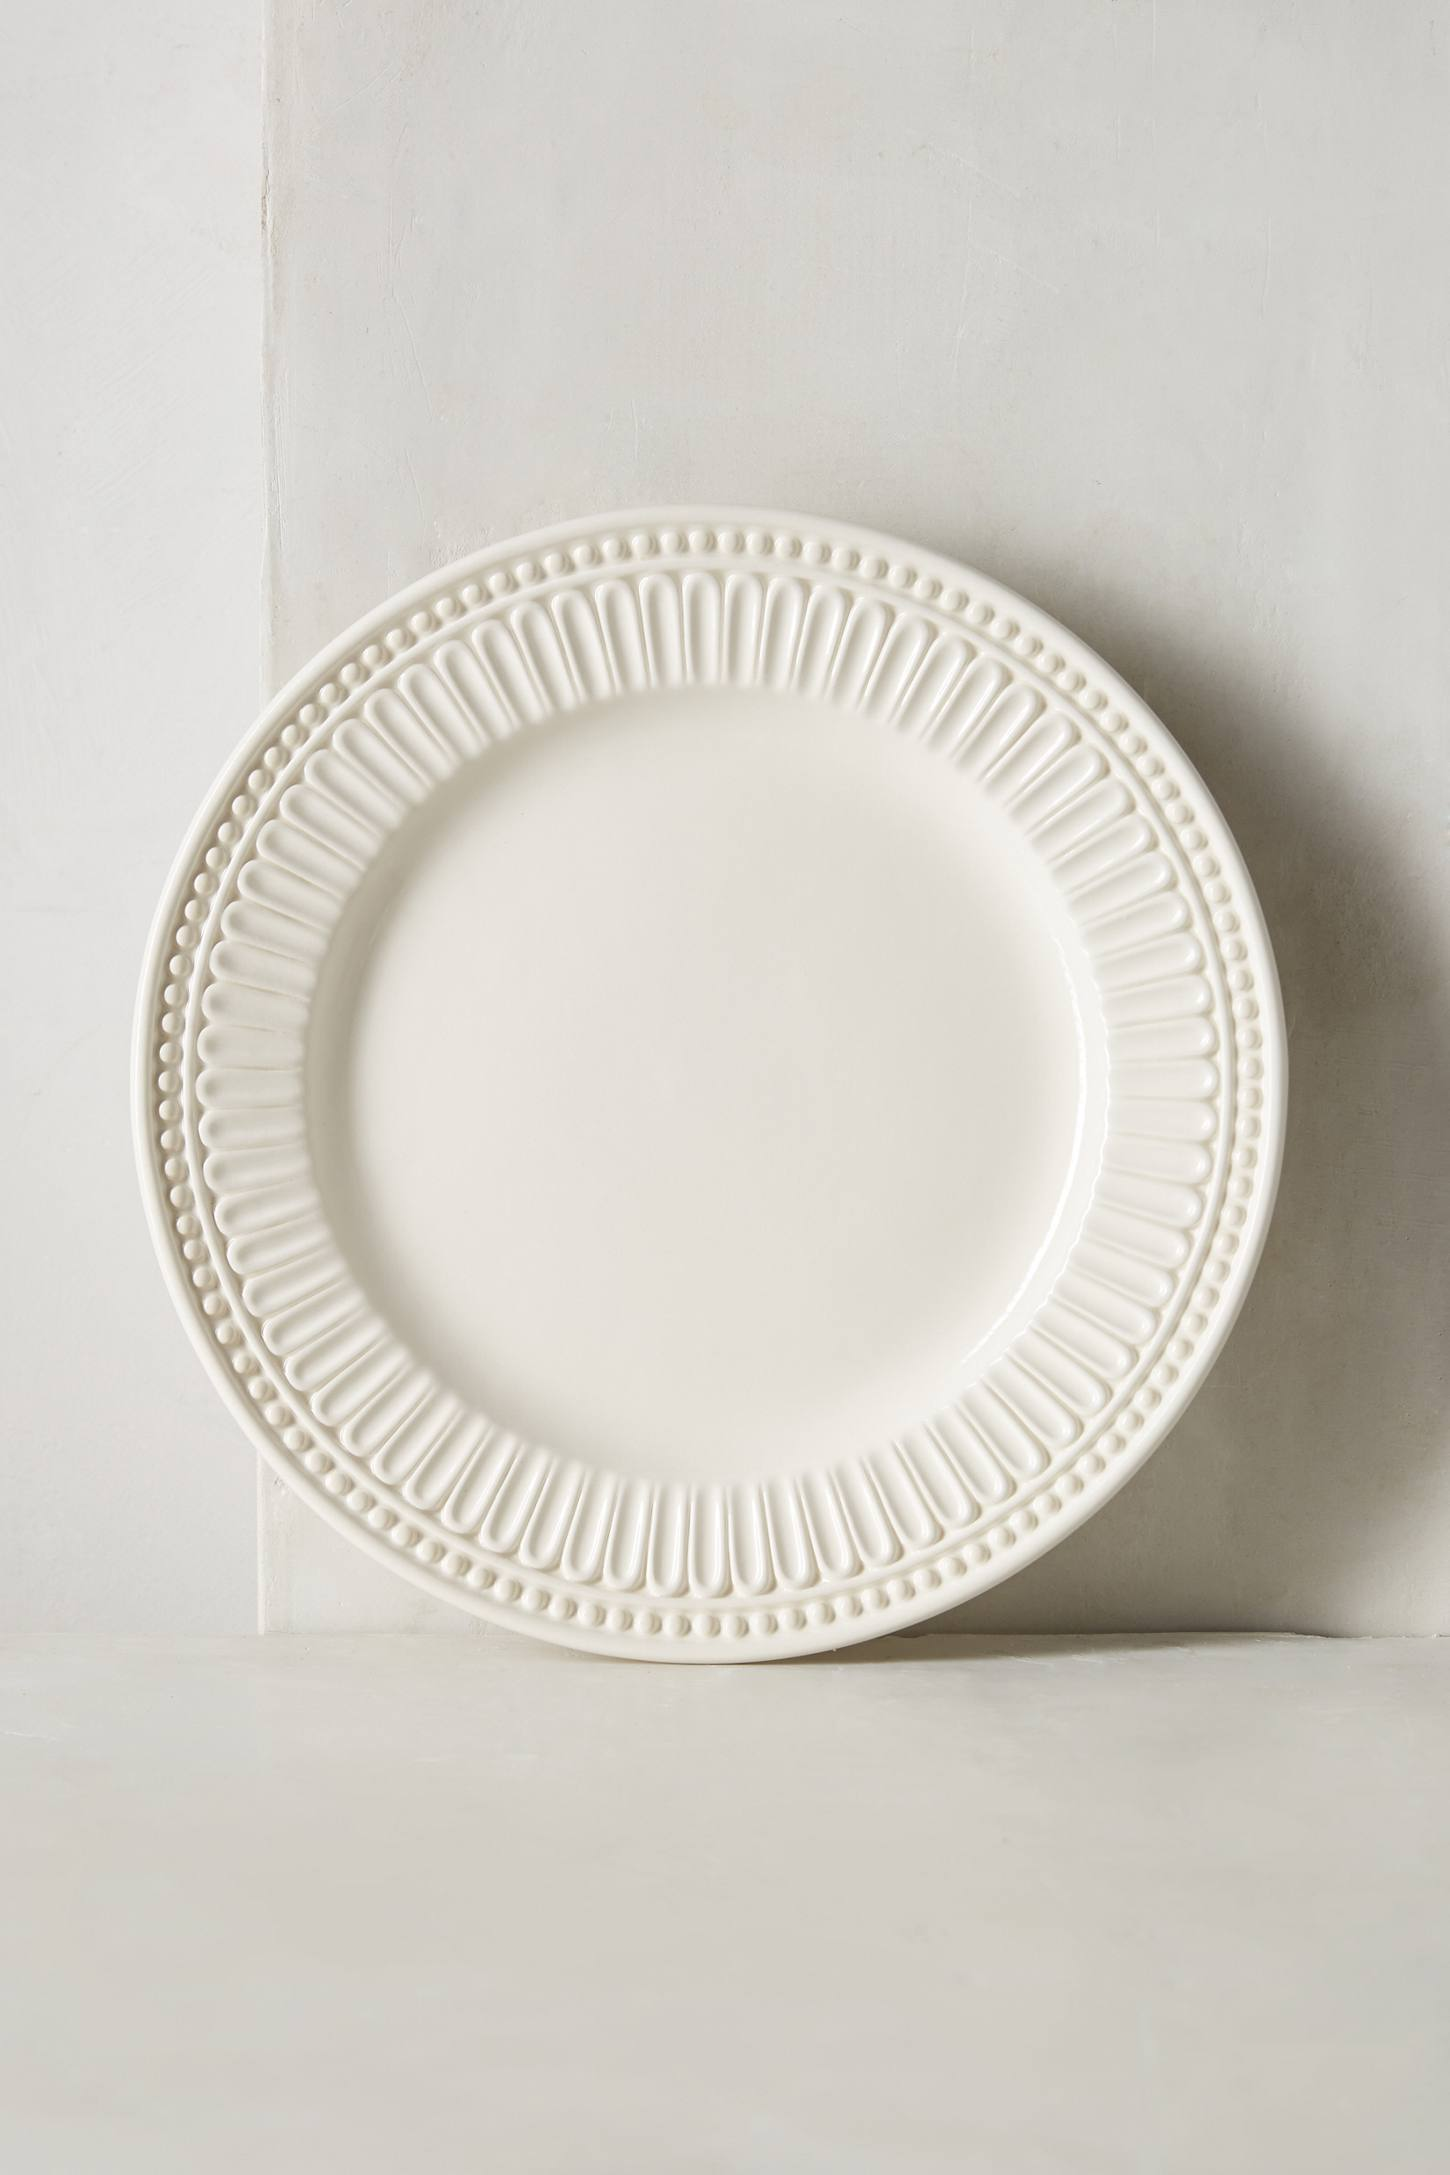 Slide View: 2: Ceres Dinner Plate